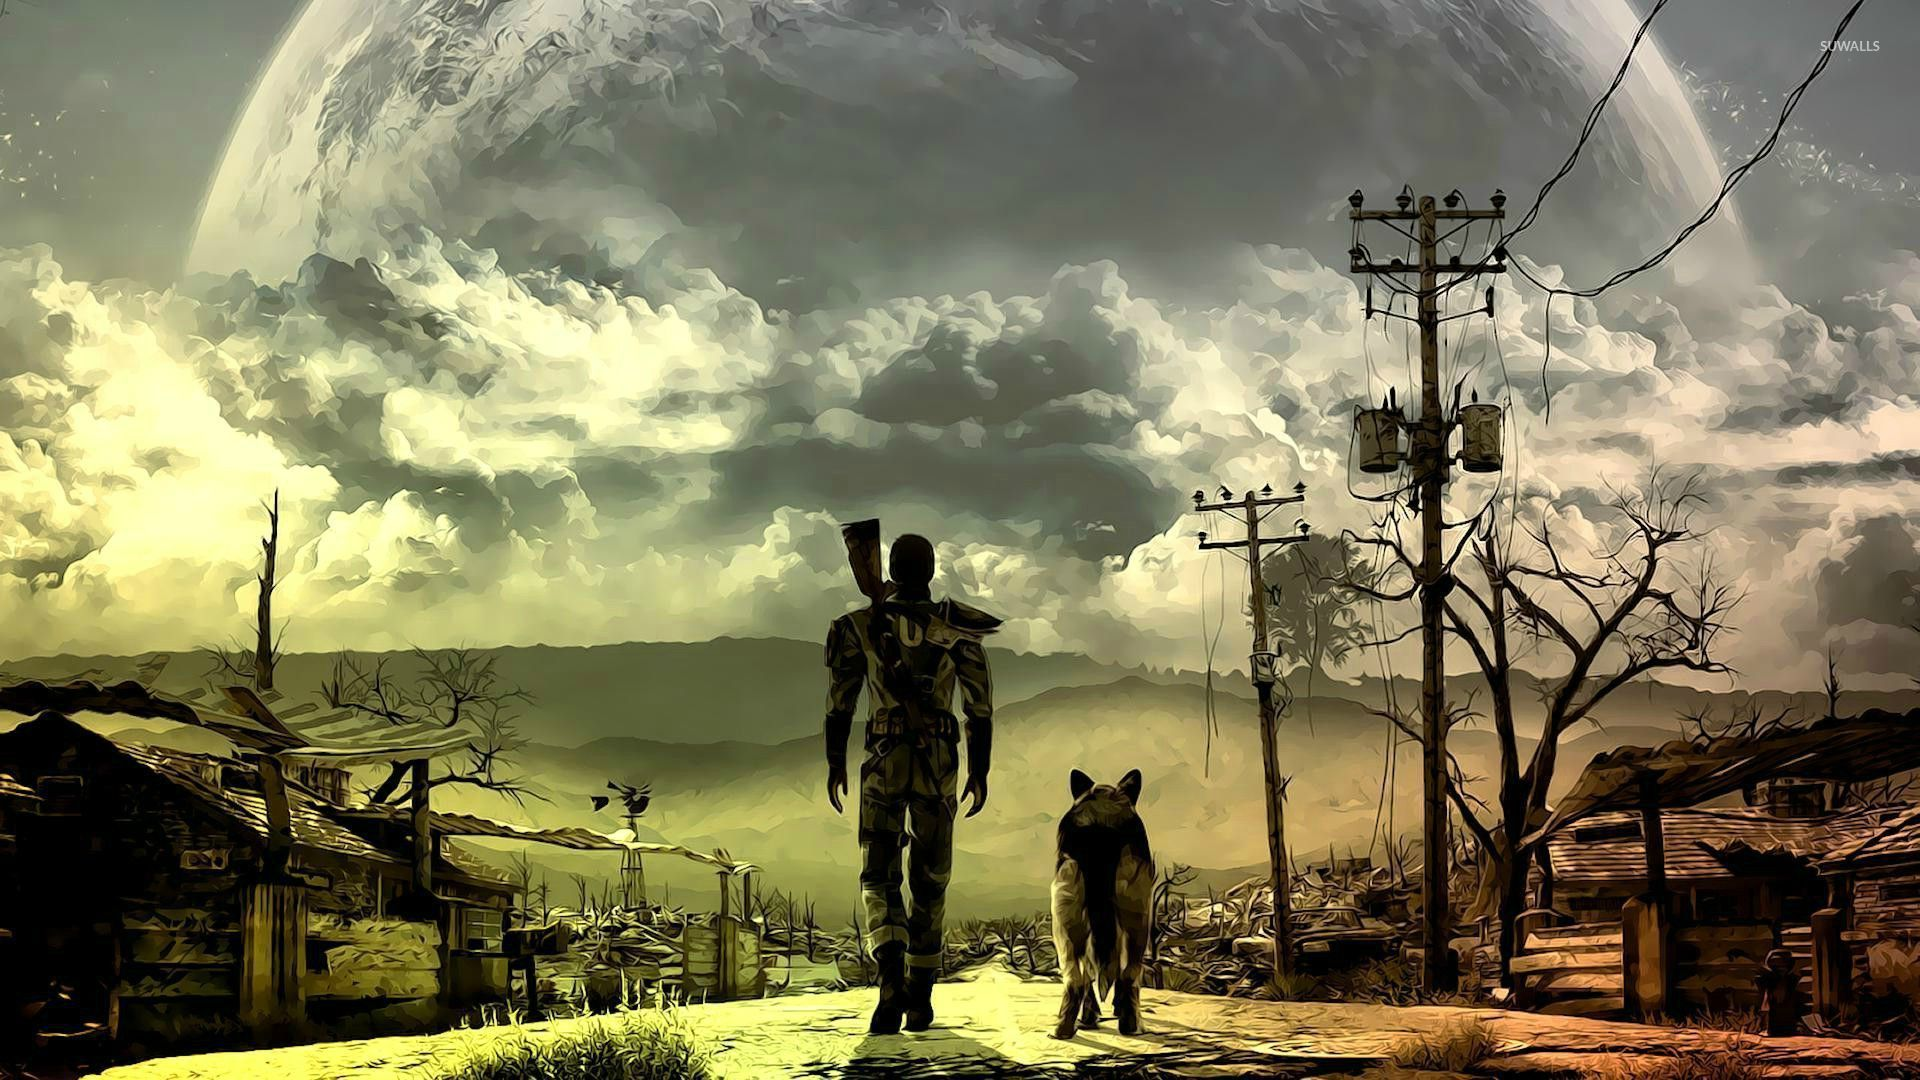 Fallout New Vegas Hd Wallpapers Backgrounds Wallpaper Fallout Wallpaper Fallout 3 Wallpaper Desktop Wallpapers Backgrounds